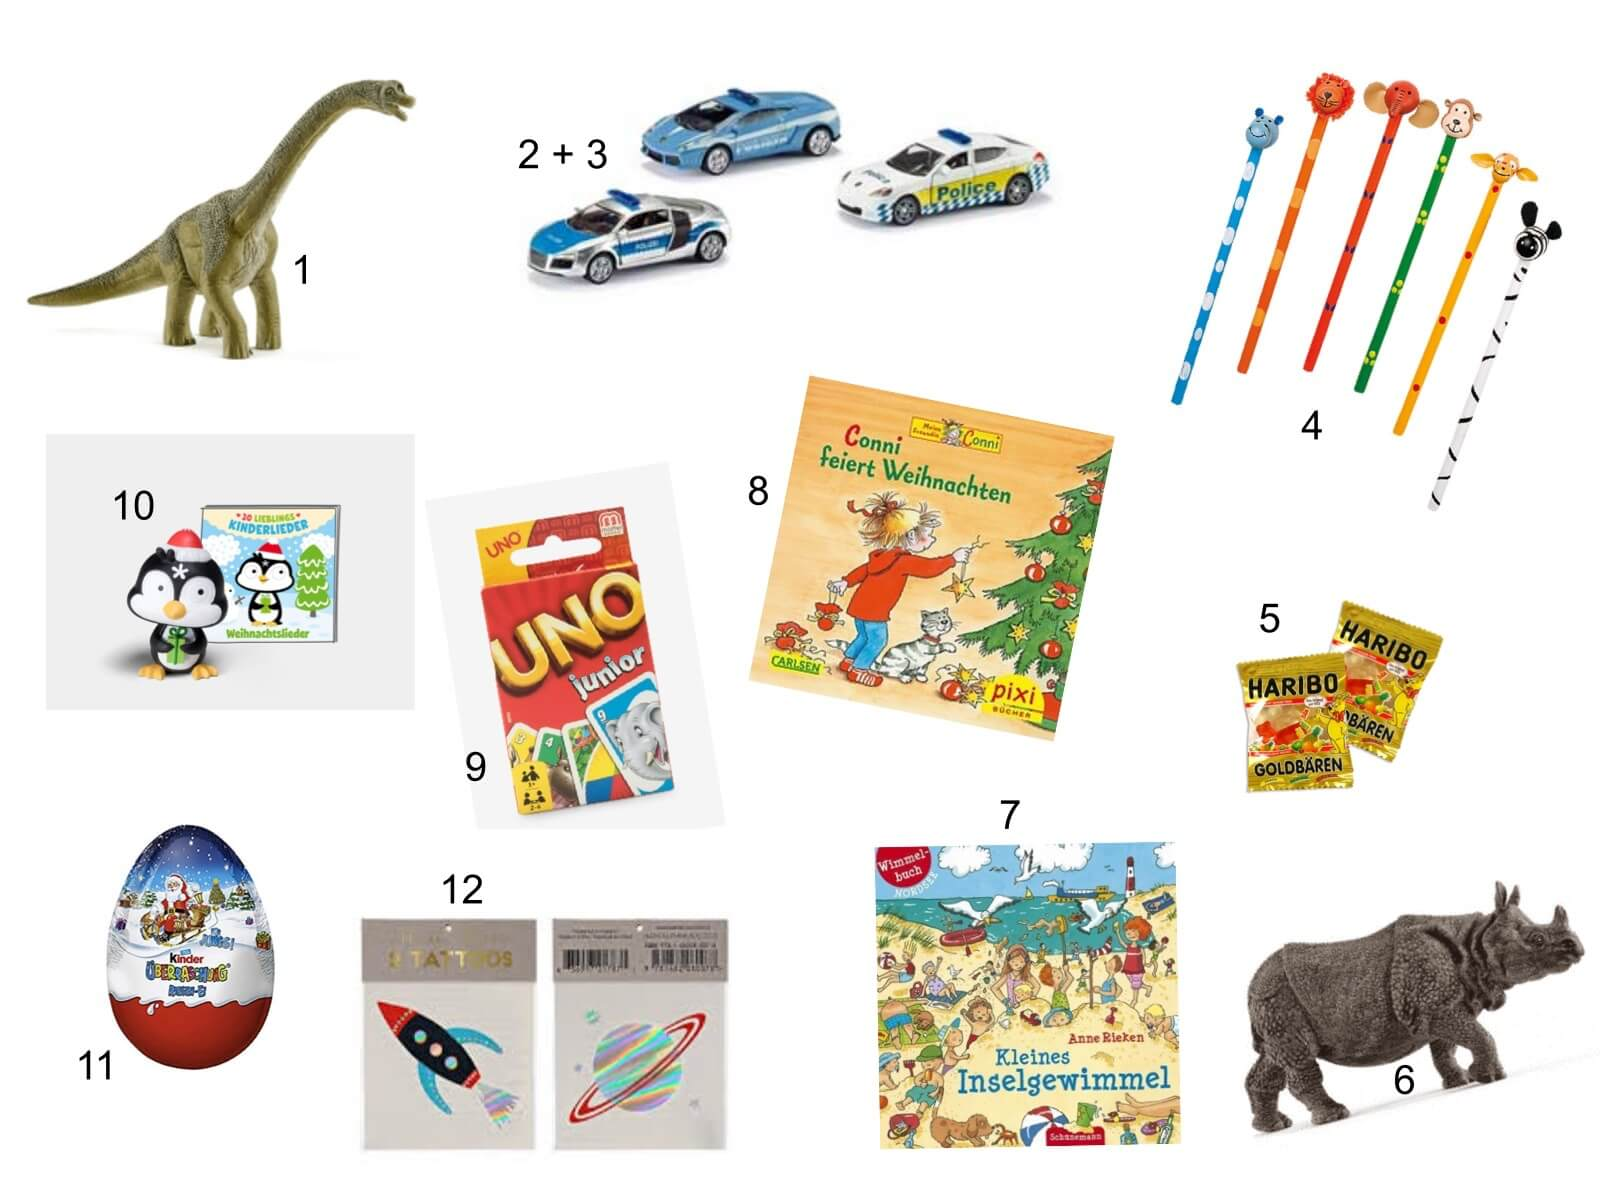 Adventskalender Ideen Füllung Happy Mum Blog 24 Ideen Zum Kinder Adventskalender Befüllen